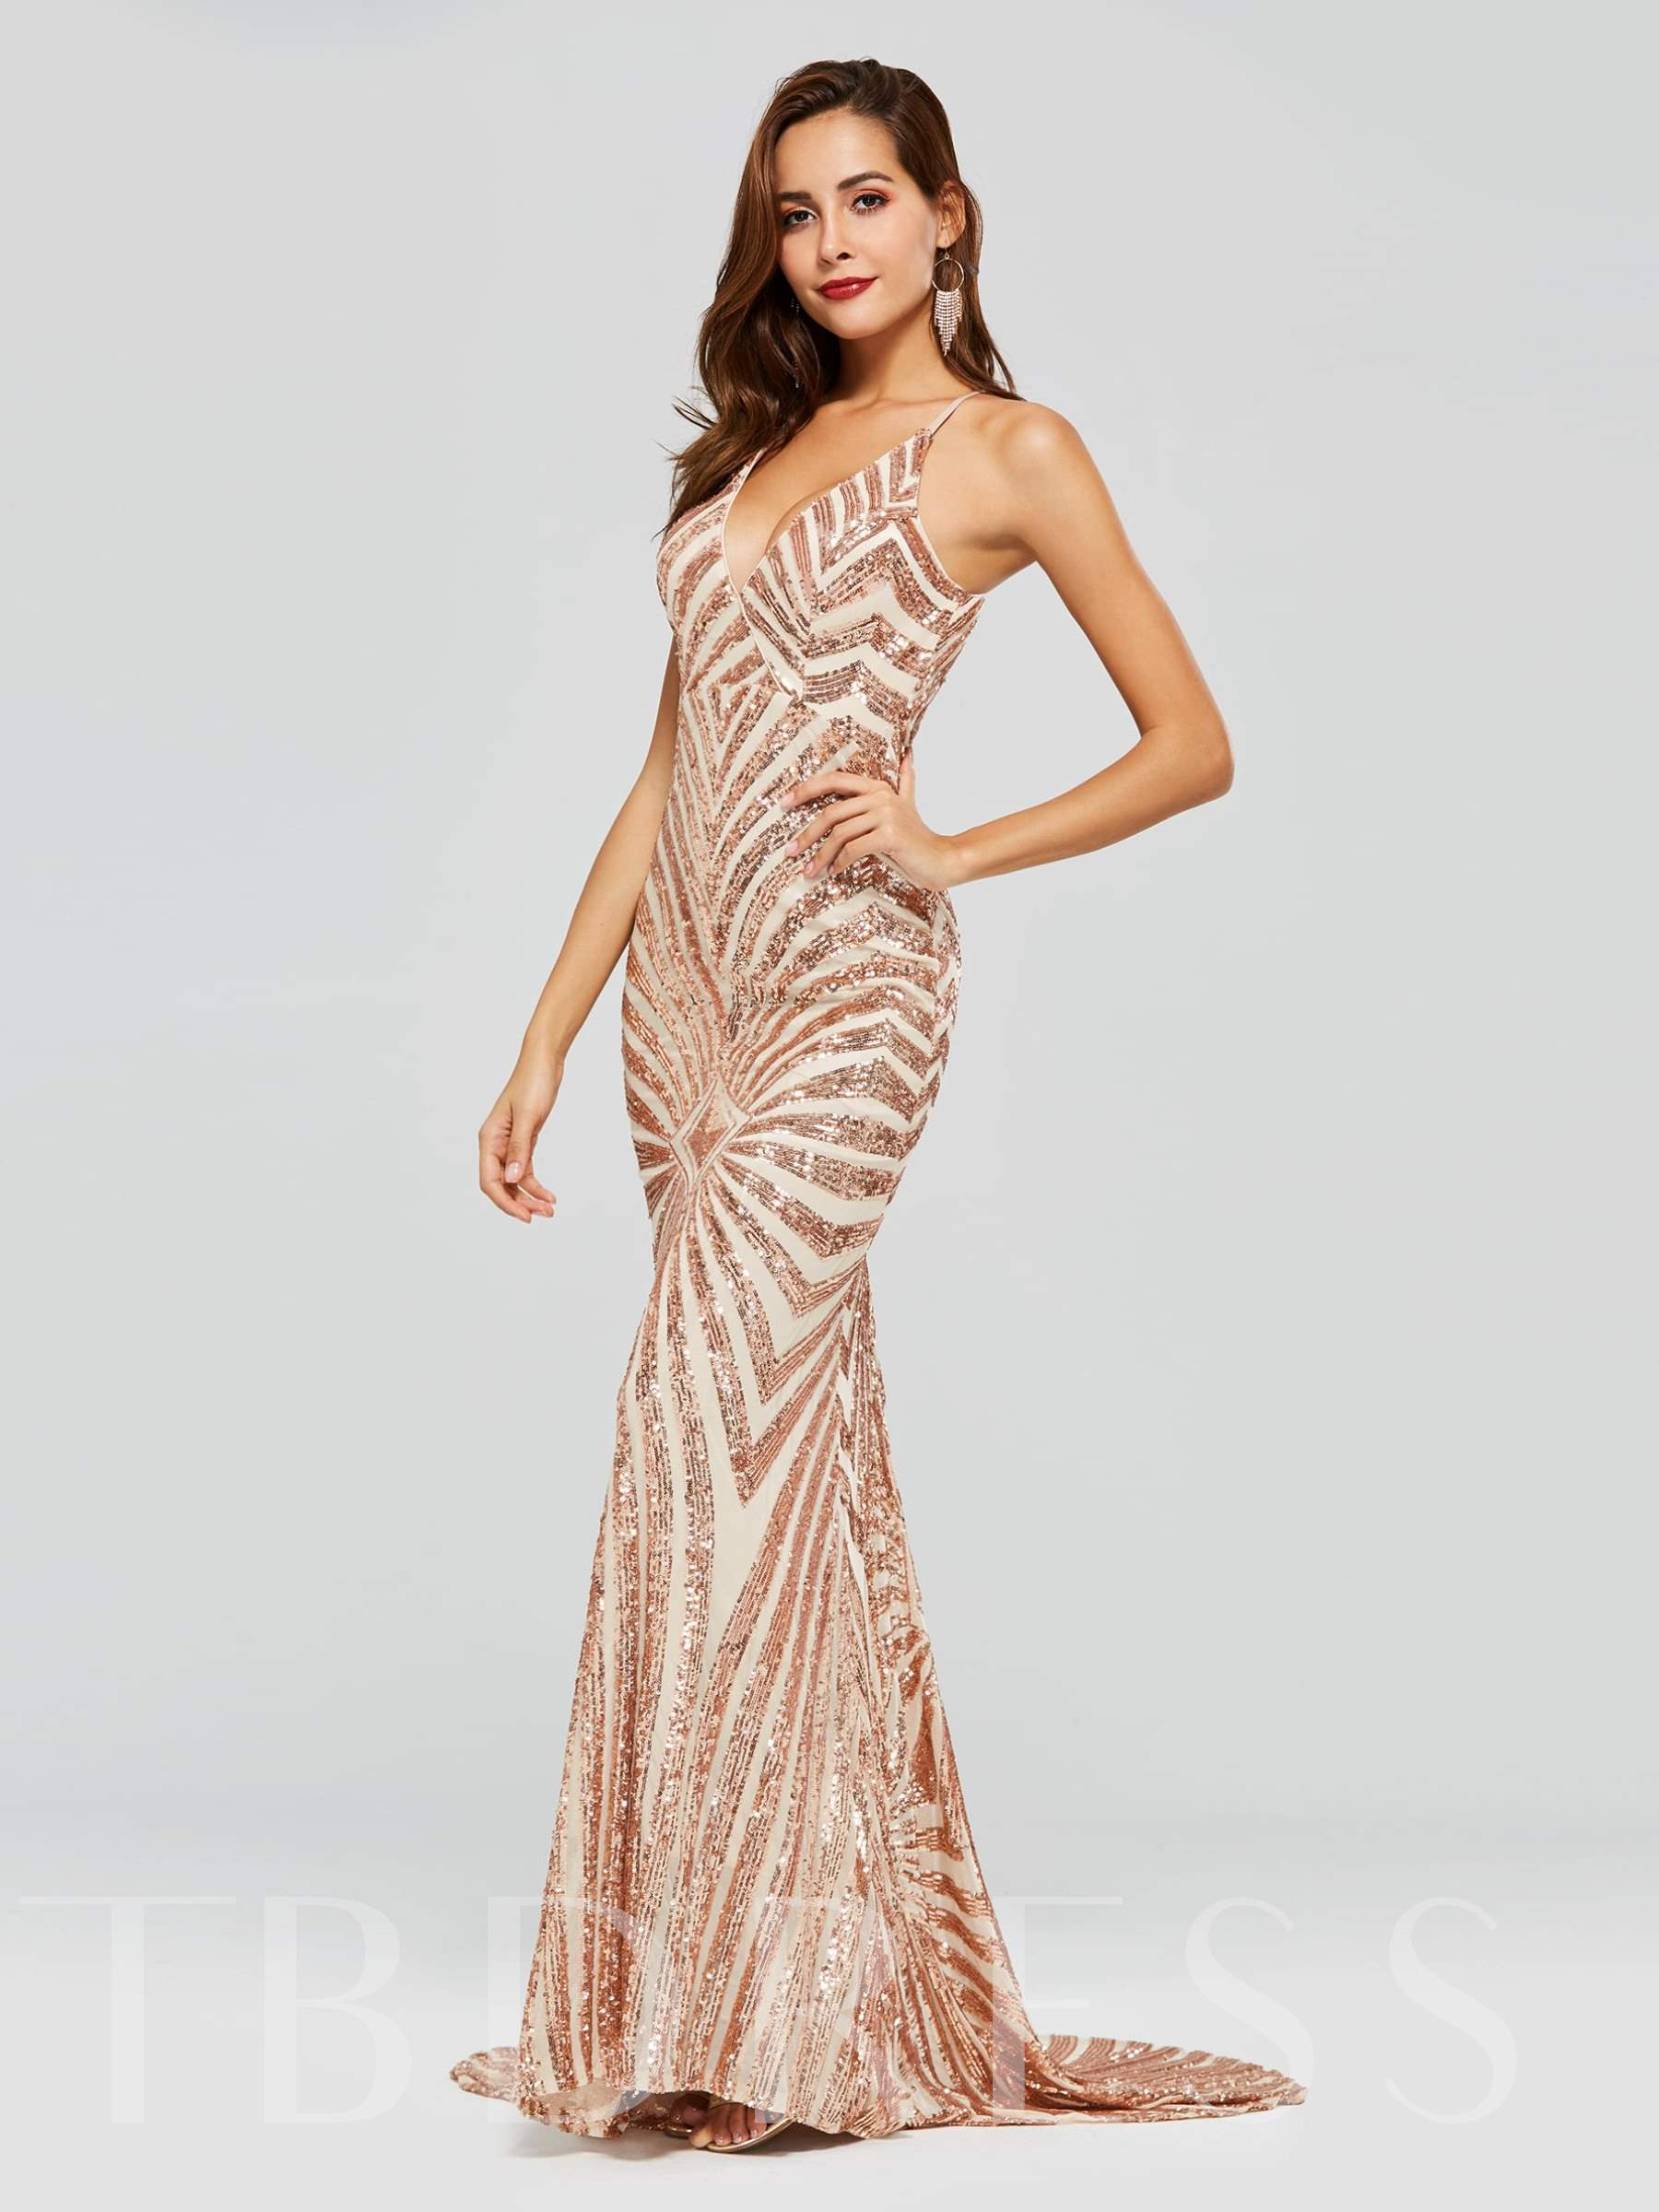 Buy Mermaid Sequins Spaghetti Straps Evening Dress, Spring,Summer,Fall,Winter, 13318470 for $128.98 in TBDress store